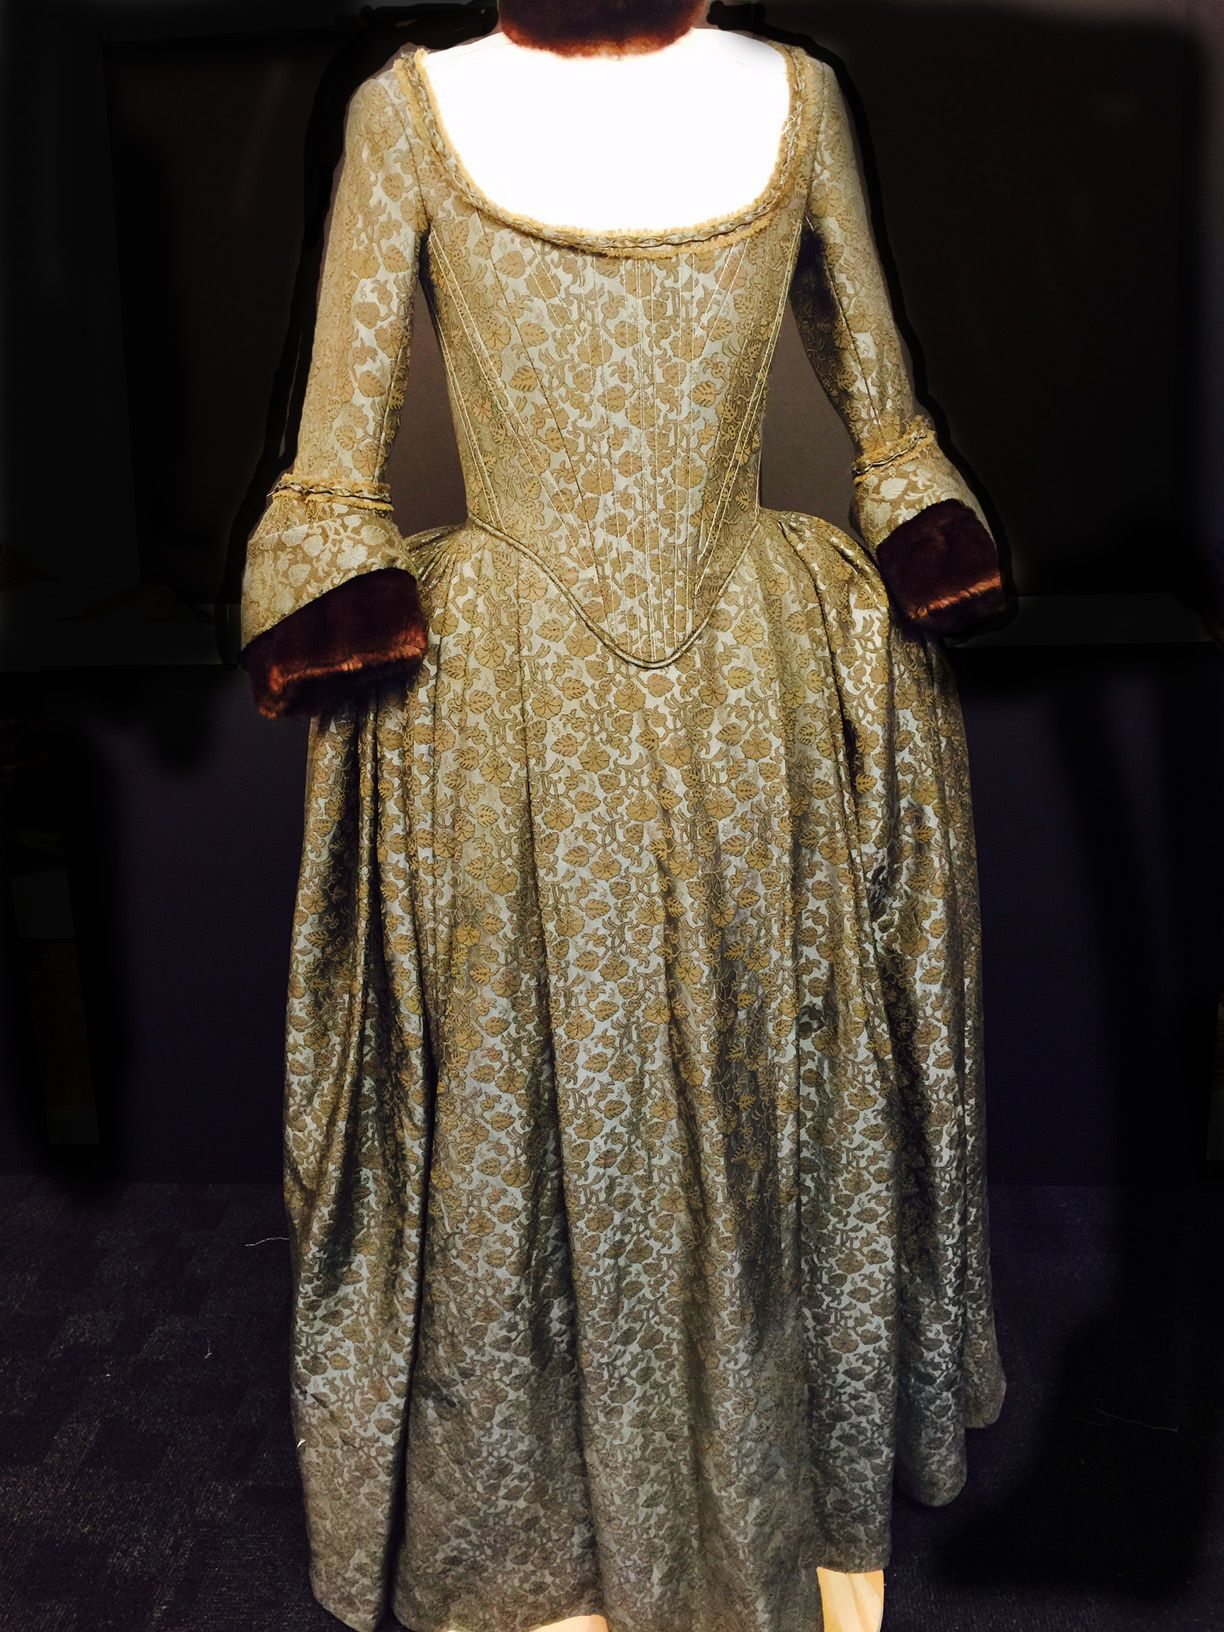 Claireus green brocade gown worn to the banquet for the duke of